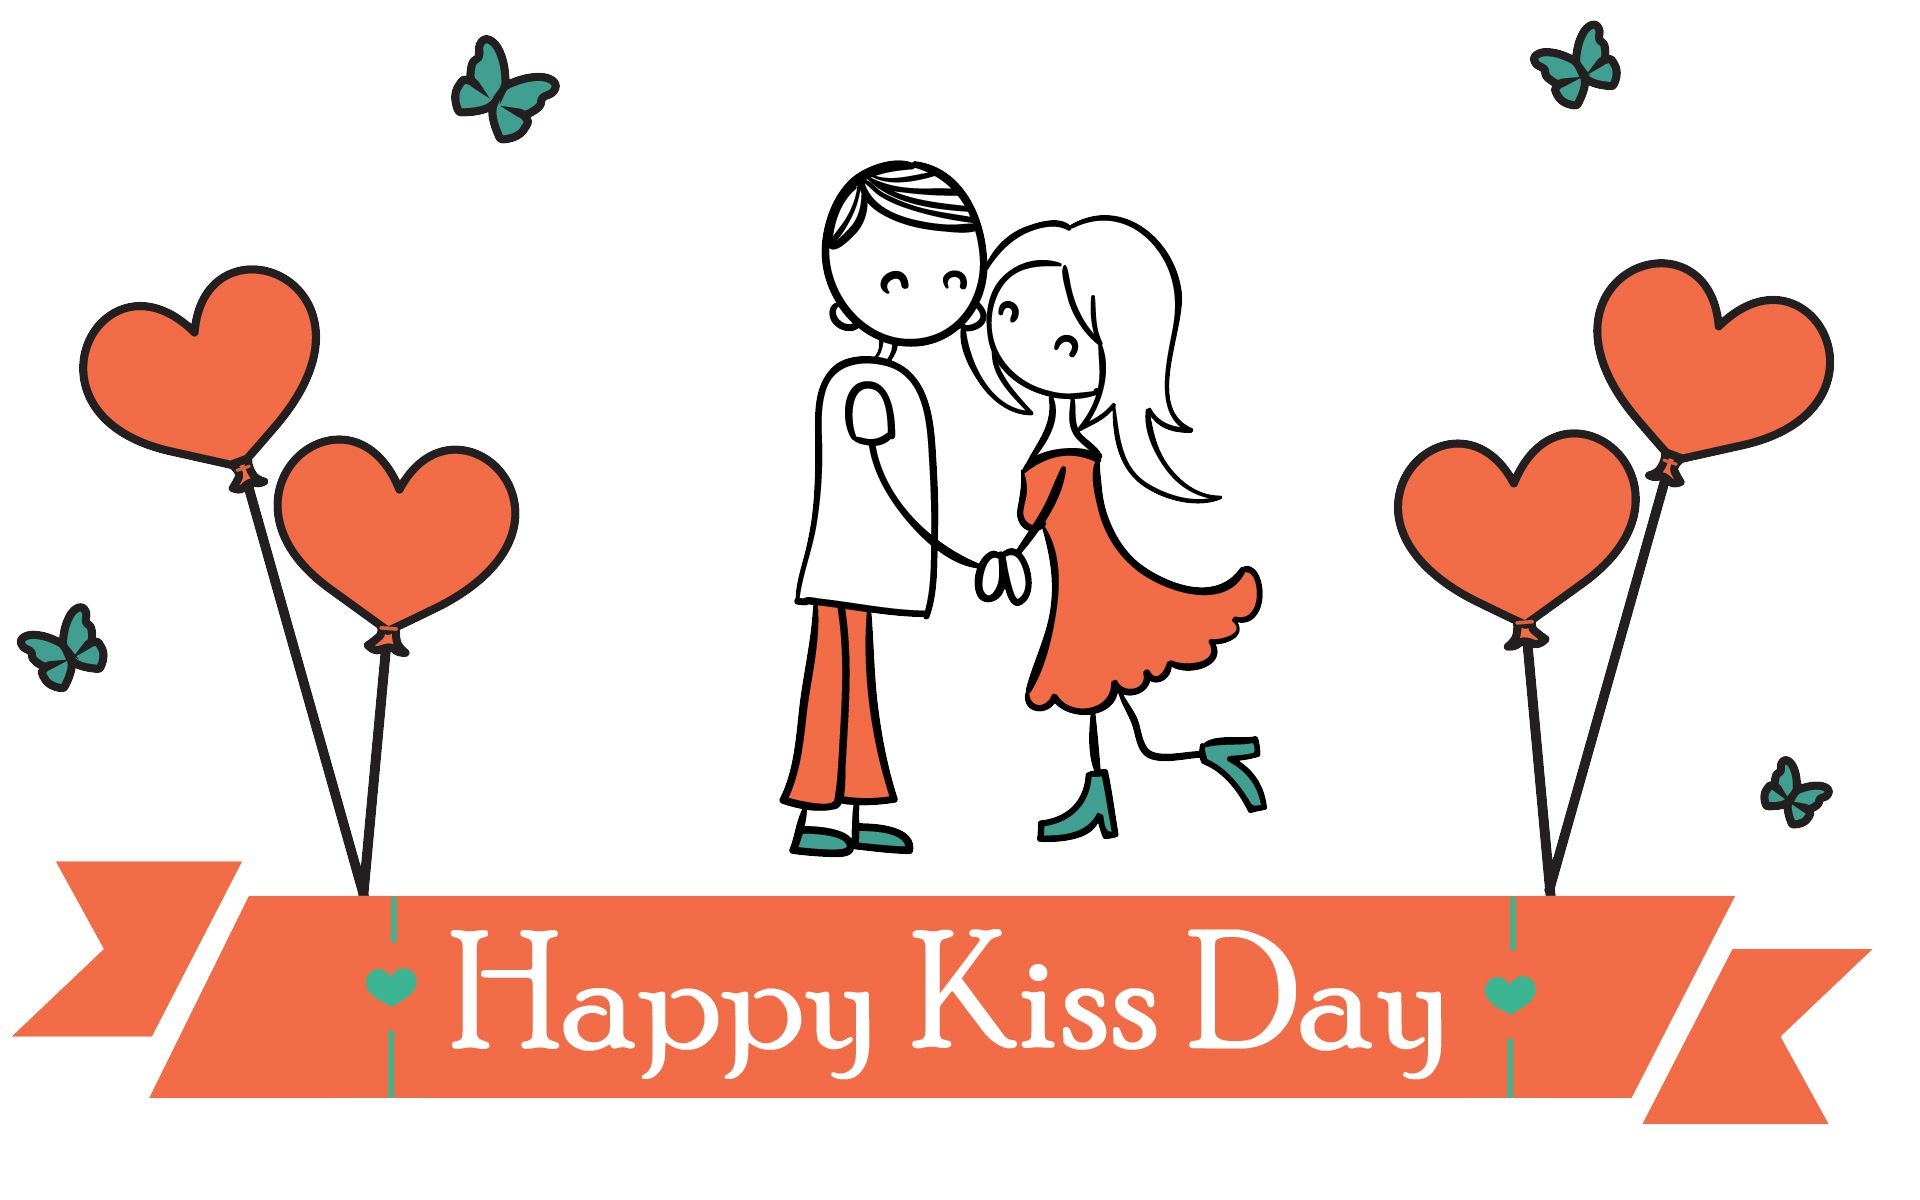 Kiss Day Wallpapers for Mobile & Desktop